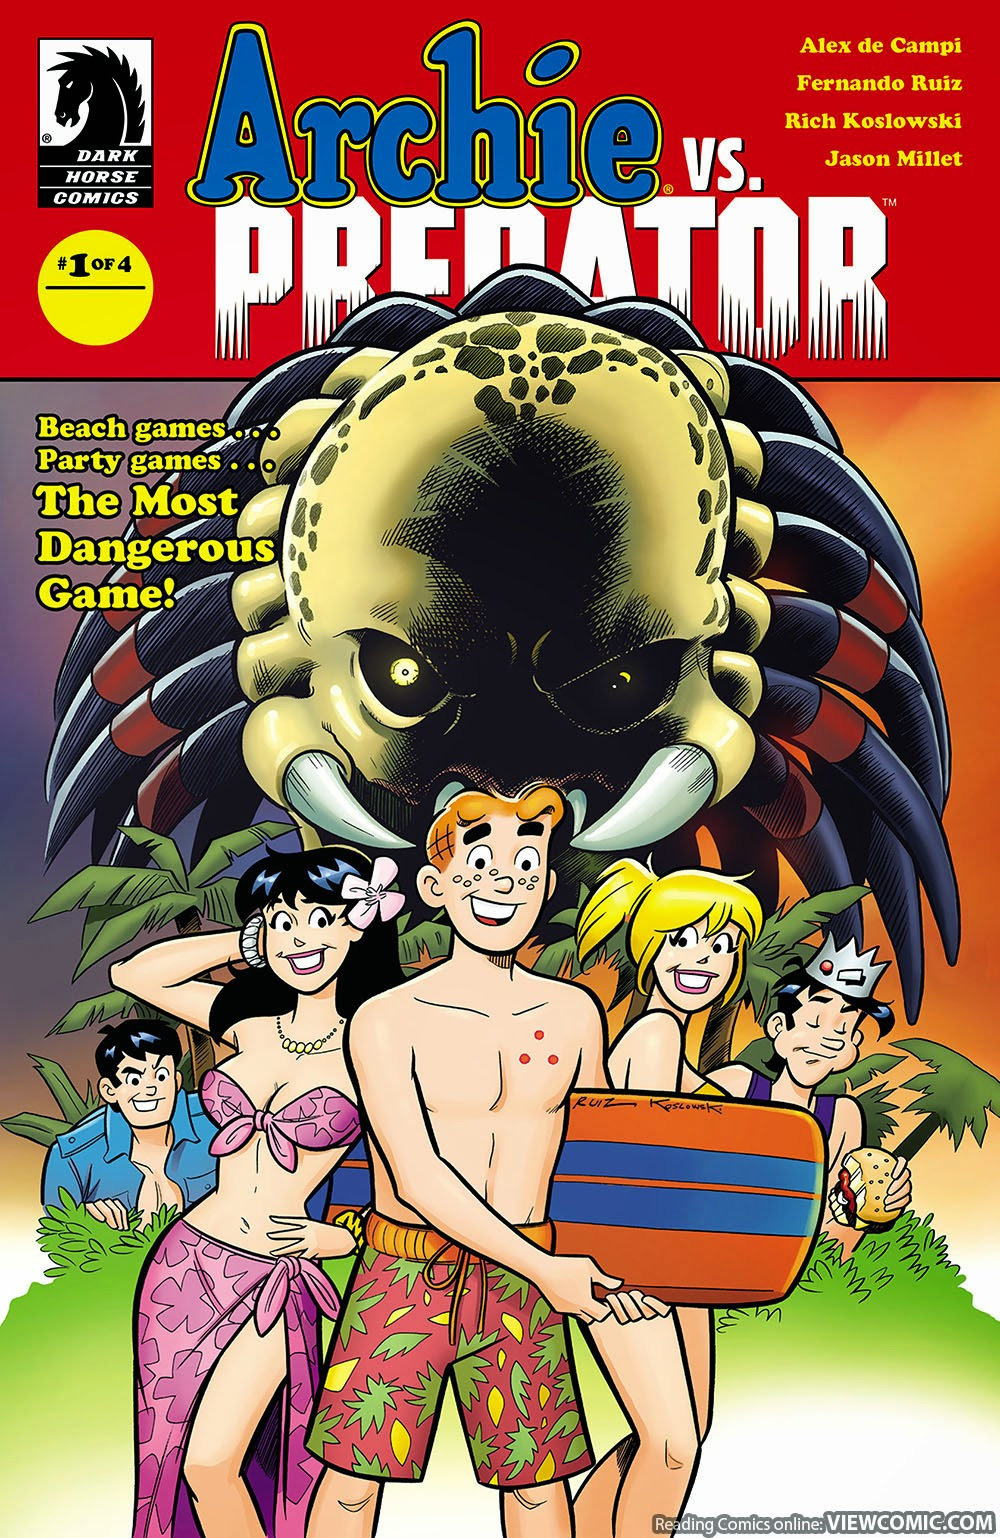 Worksheet Online Free Reading archie vs predator viewcomic reading comics online for free 01 of 04 2015